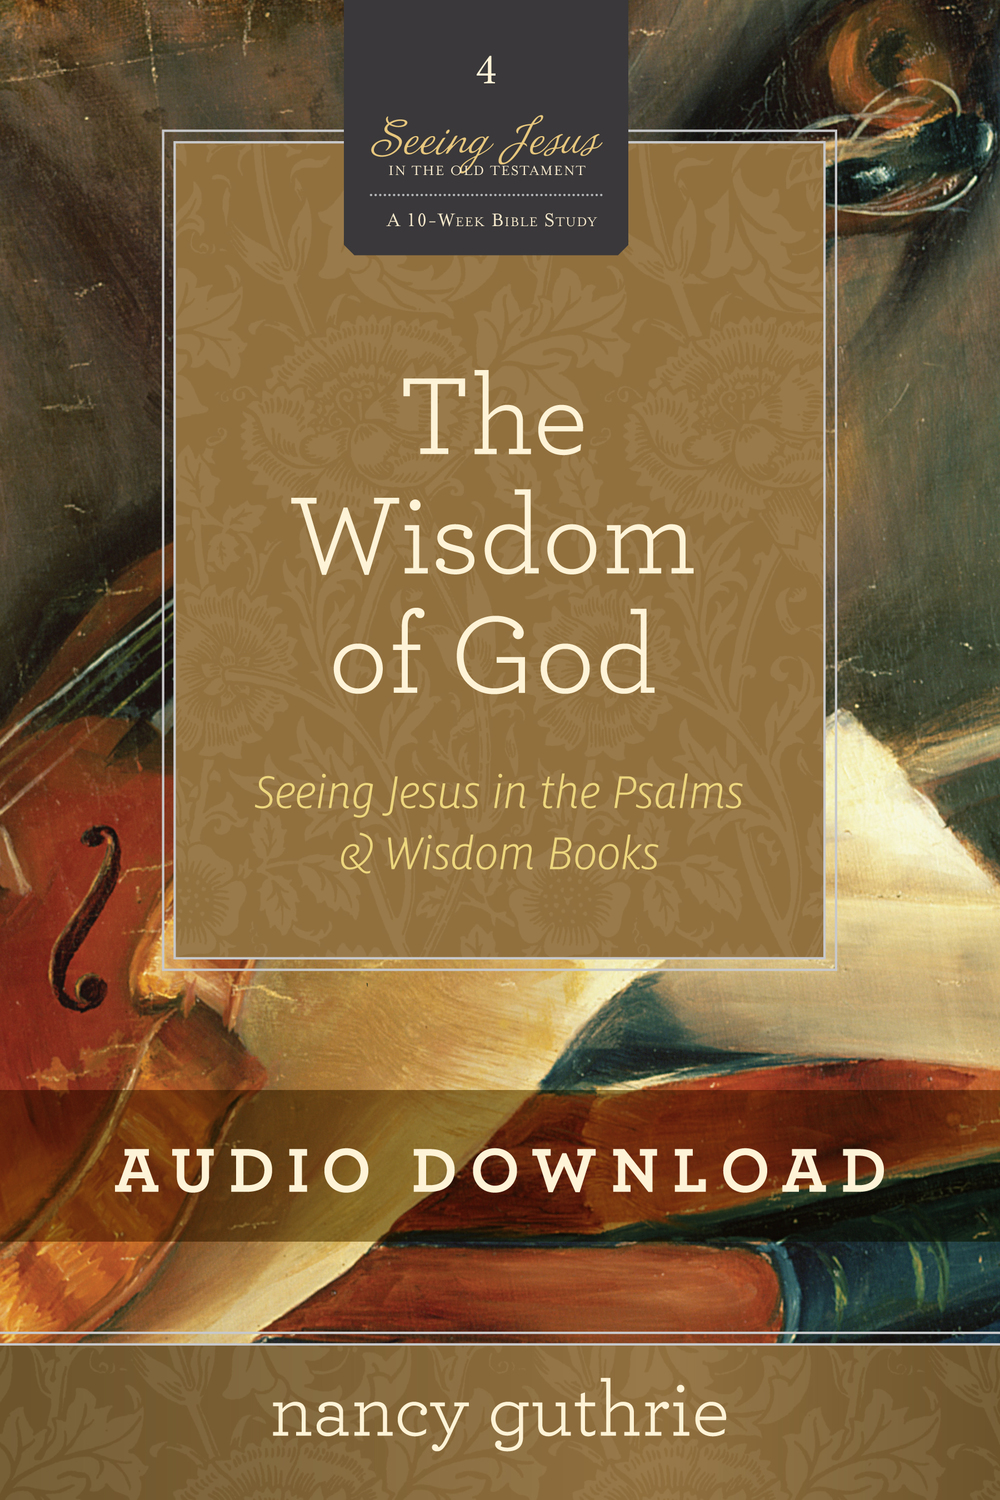 The Wisdom of God Audio Session 3 Download